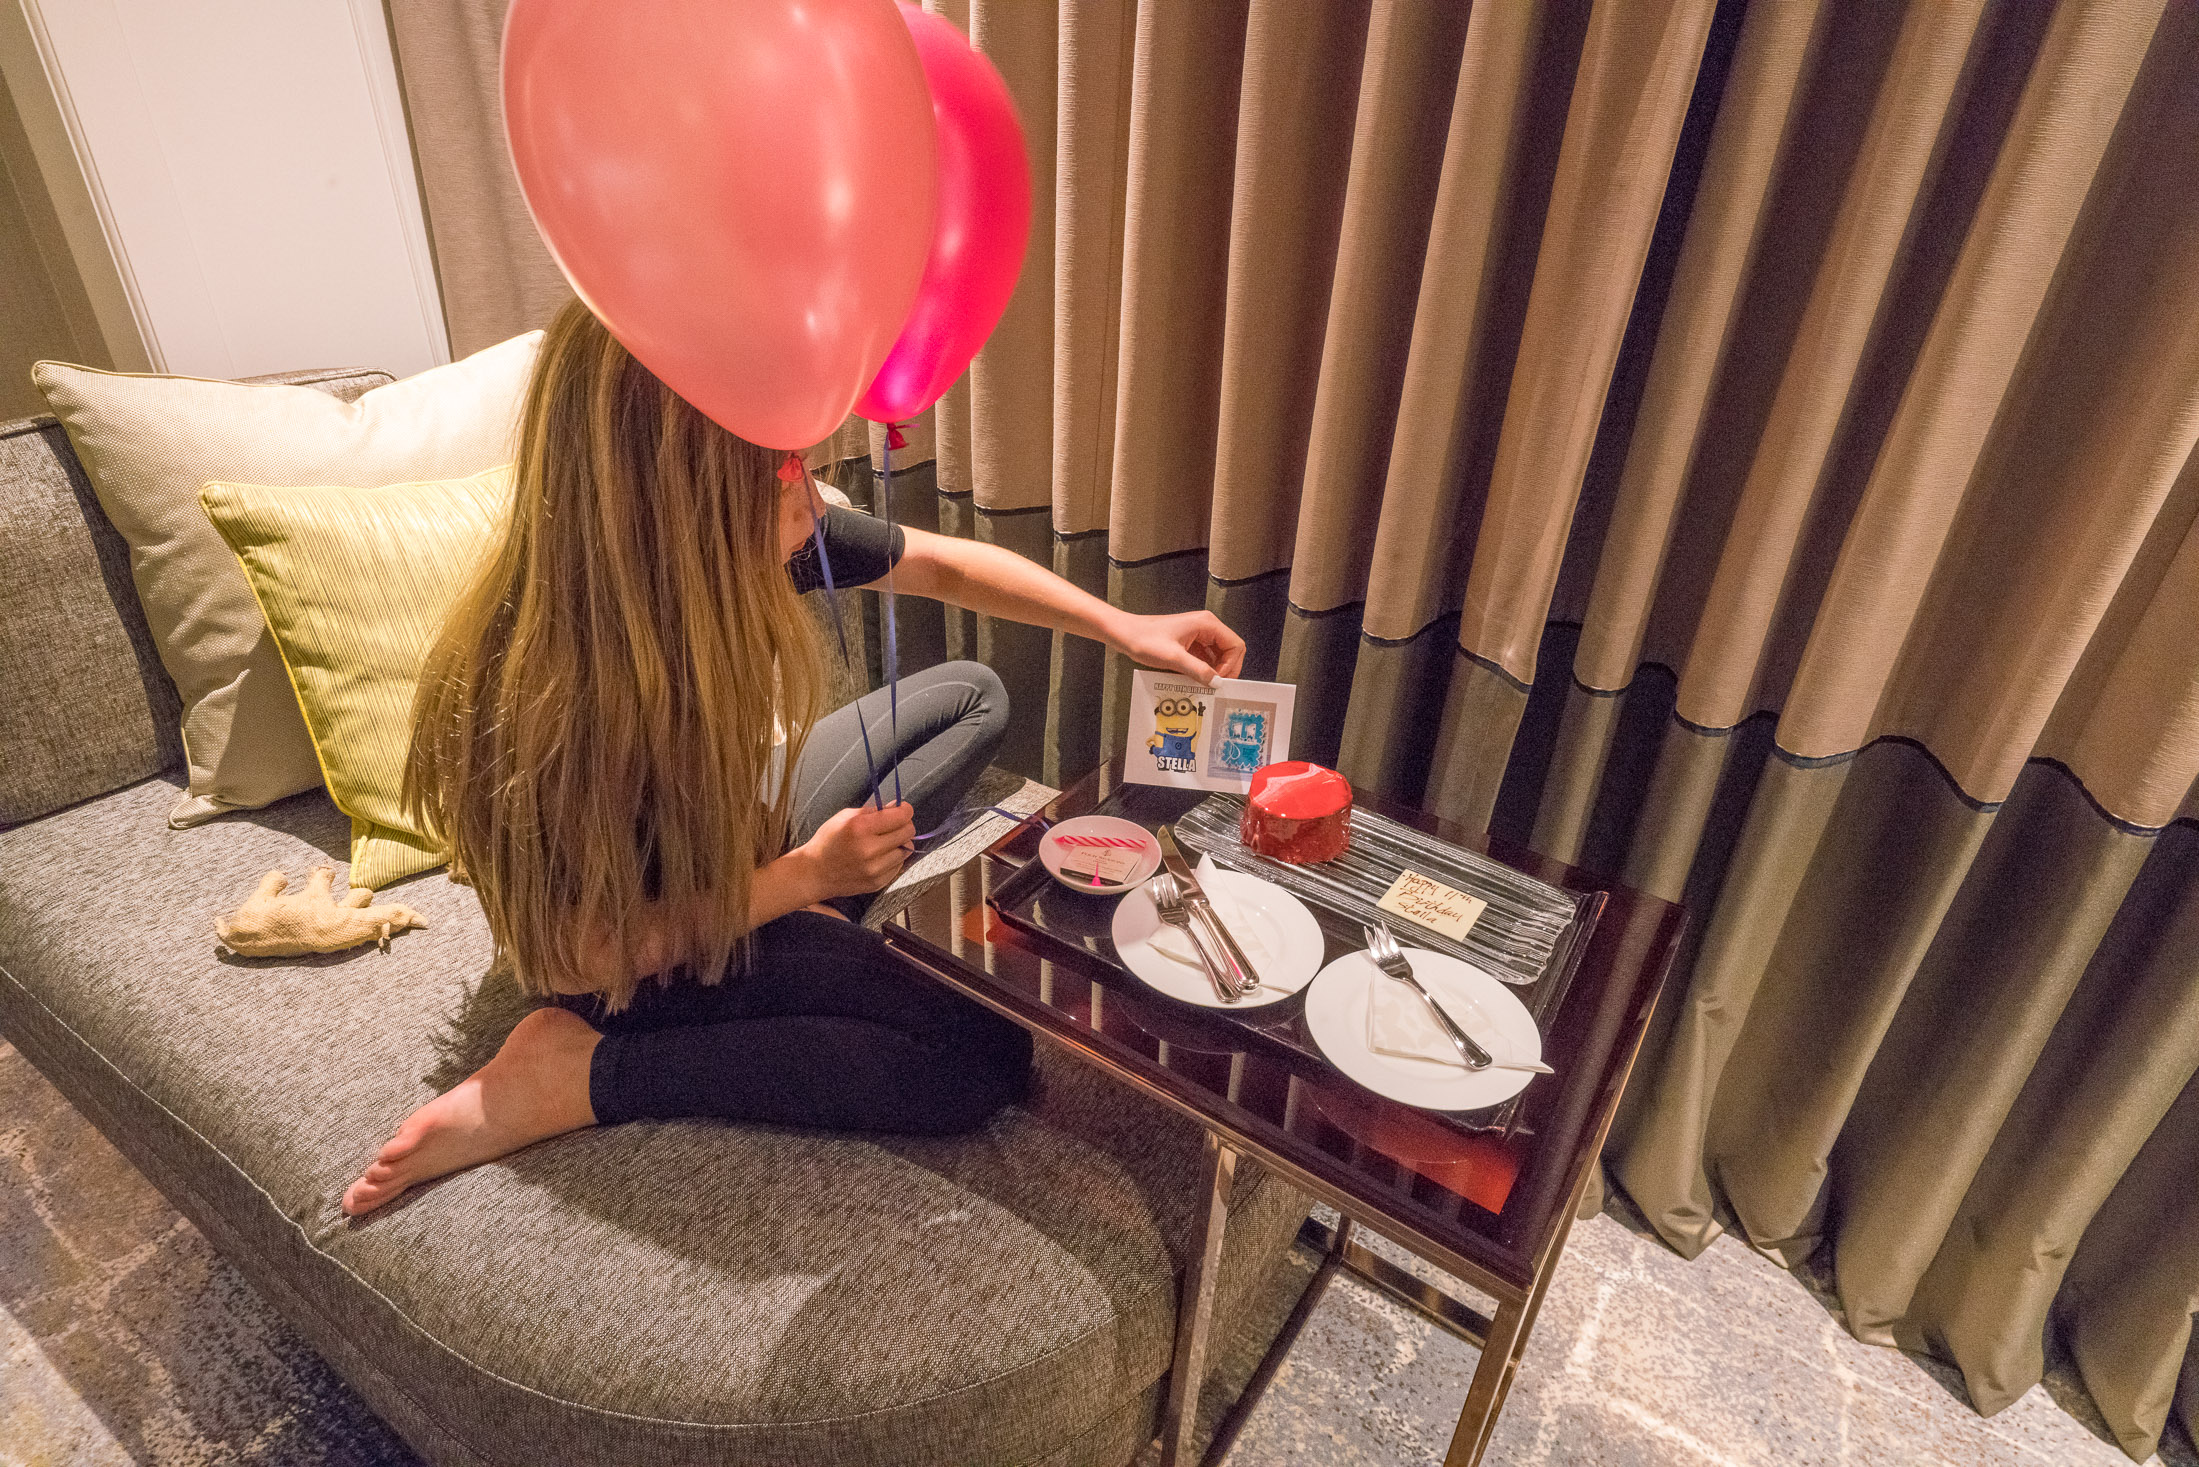 Four Seasons Hotel Singapore: Why We Always Stay Here - La